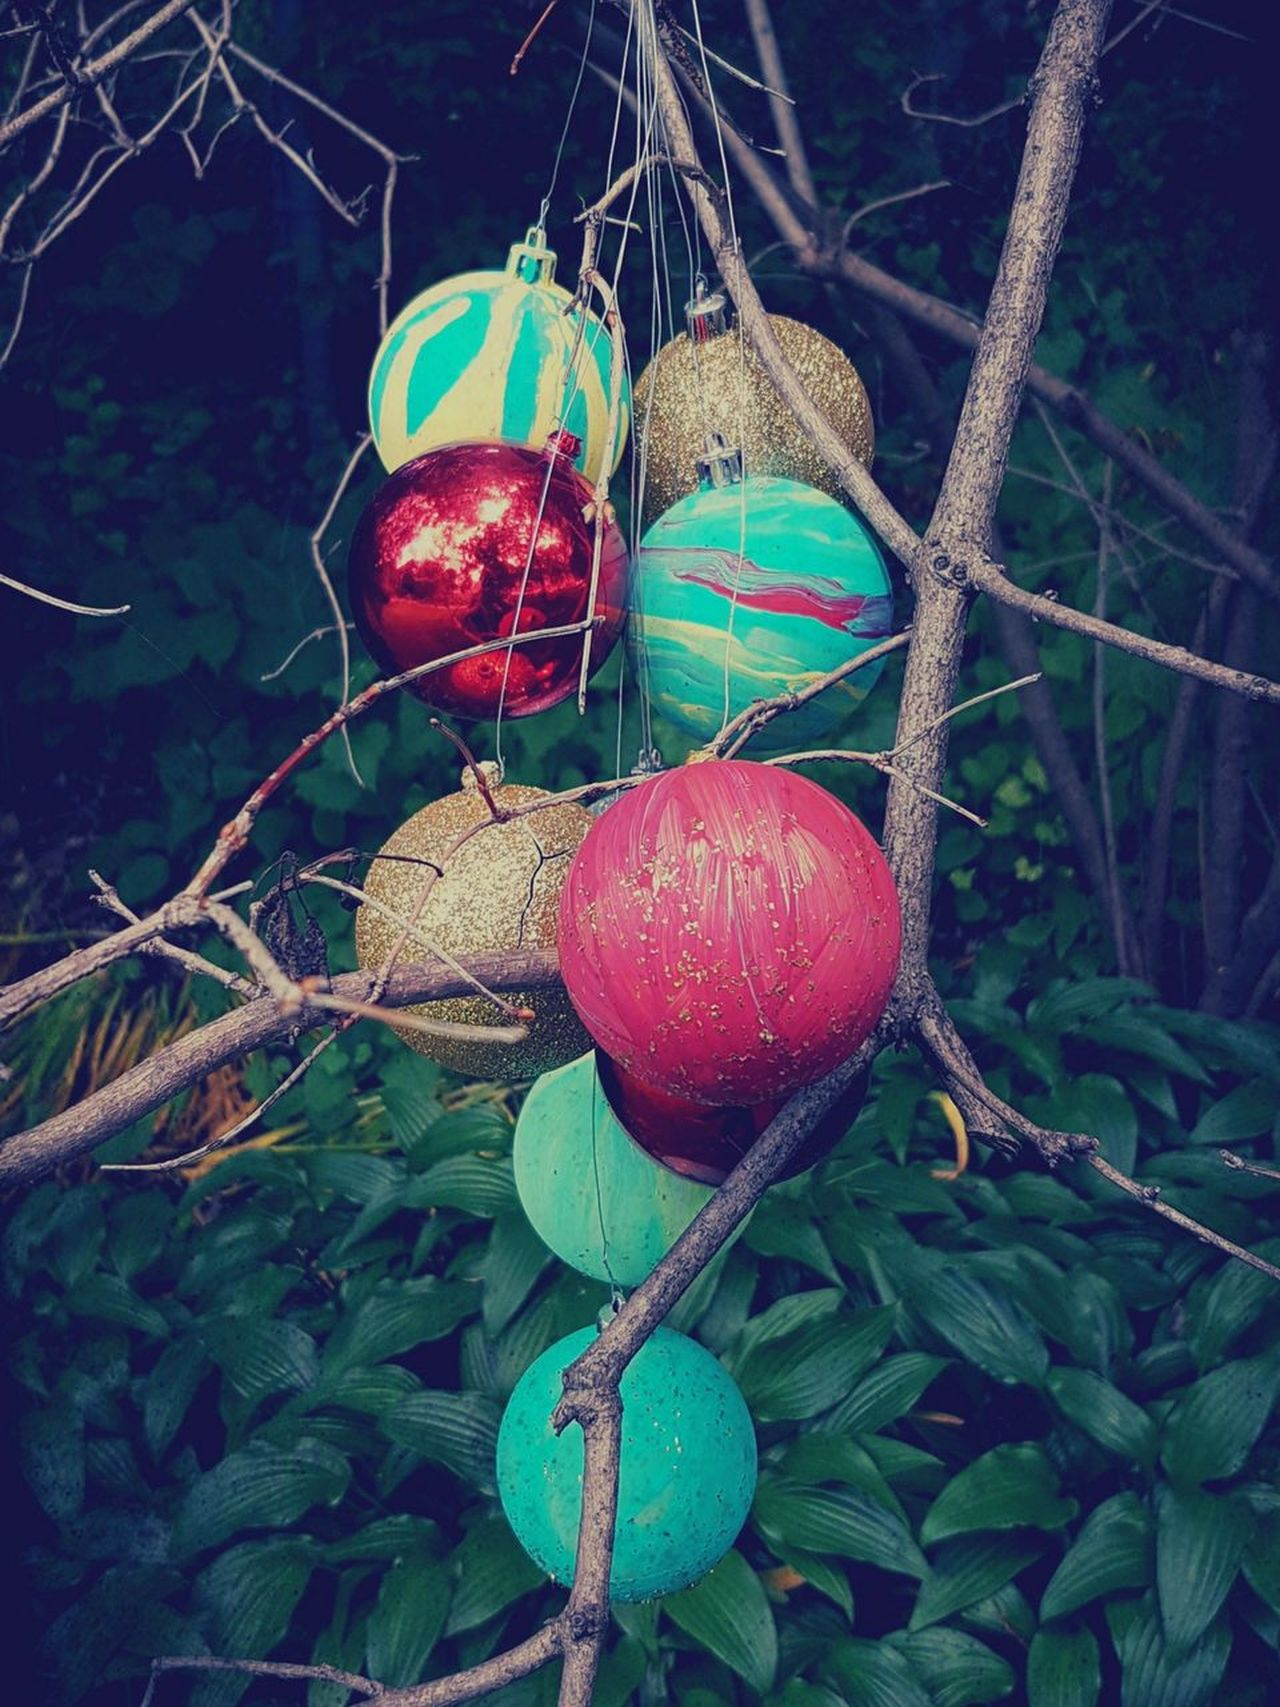 Christmas in the forest??..l was wandering around looking at the trees, when something caught my eye...these beautiful painted Christmas balls were just hanging in a tree! ... Painted Christmas Balls Tree Hanging No People Summer Outdoors Close-up Nature PhotographyMobile Photography Eyeemphotography Eyeem Marketplace EyeEm Gallery EyeEm Team Getty Images Premium Collection EyeEm Best Shots - Nature The Week On EyeEm EyeEm Selects EyeEm Best Shots Beauty In Nature Plant Green Leaves Check This Out Macro Photography Eye4photography  Christmas Decorations Hanging